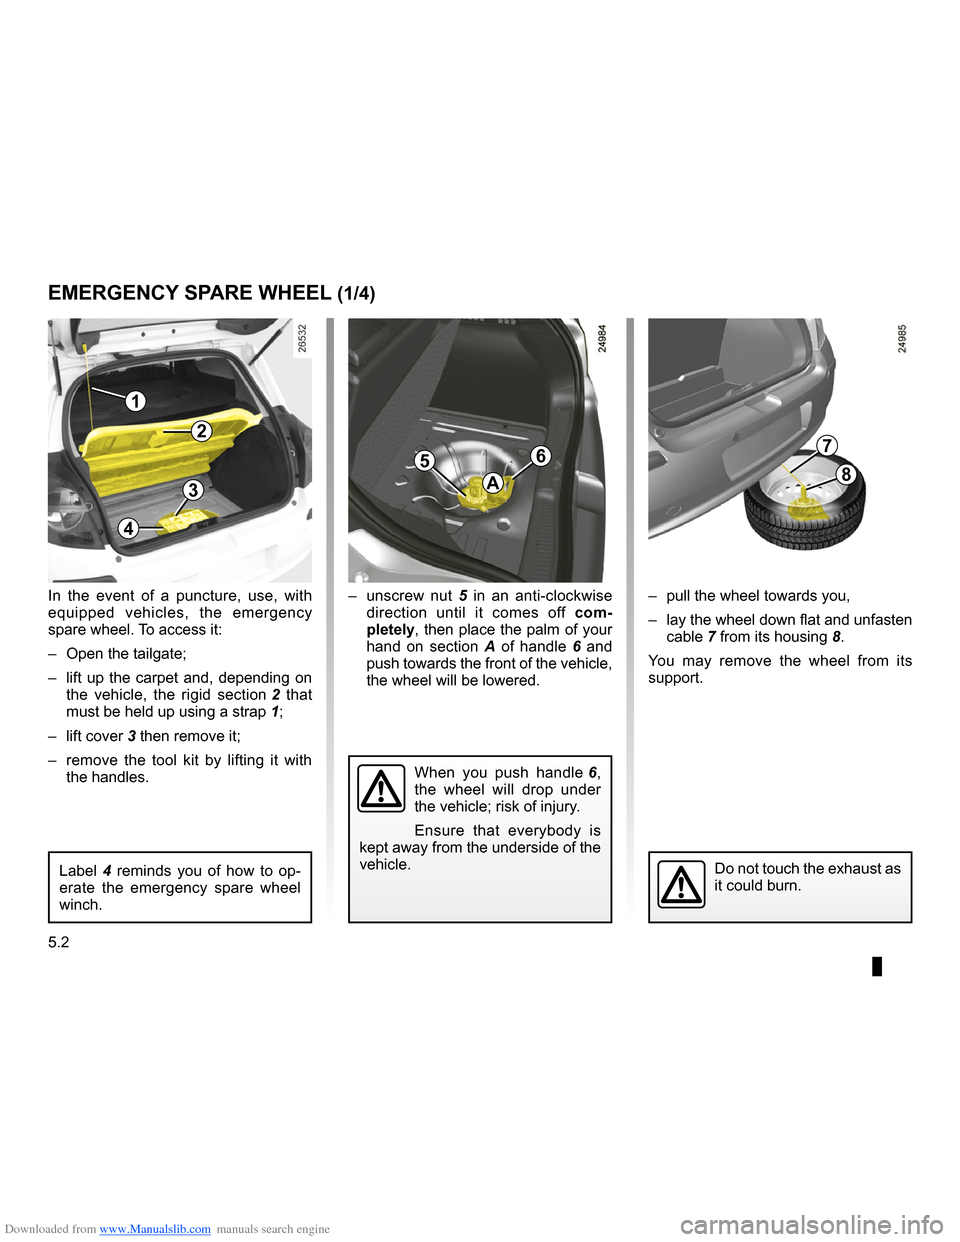 RENAULT CLIO 2009 X85 / 3.G Owners Manual, Page 190